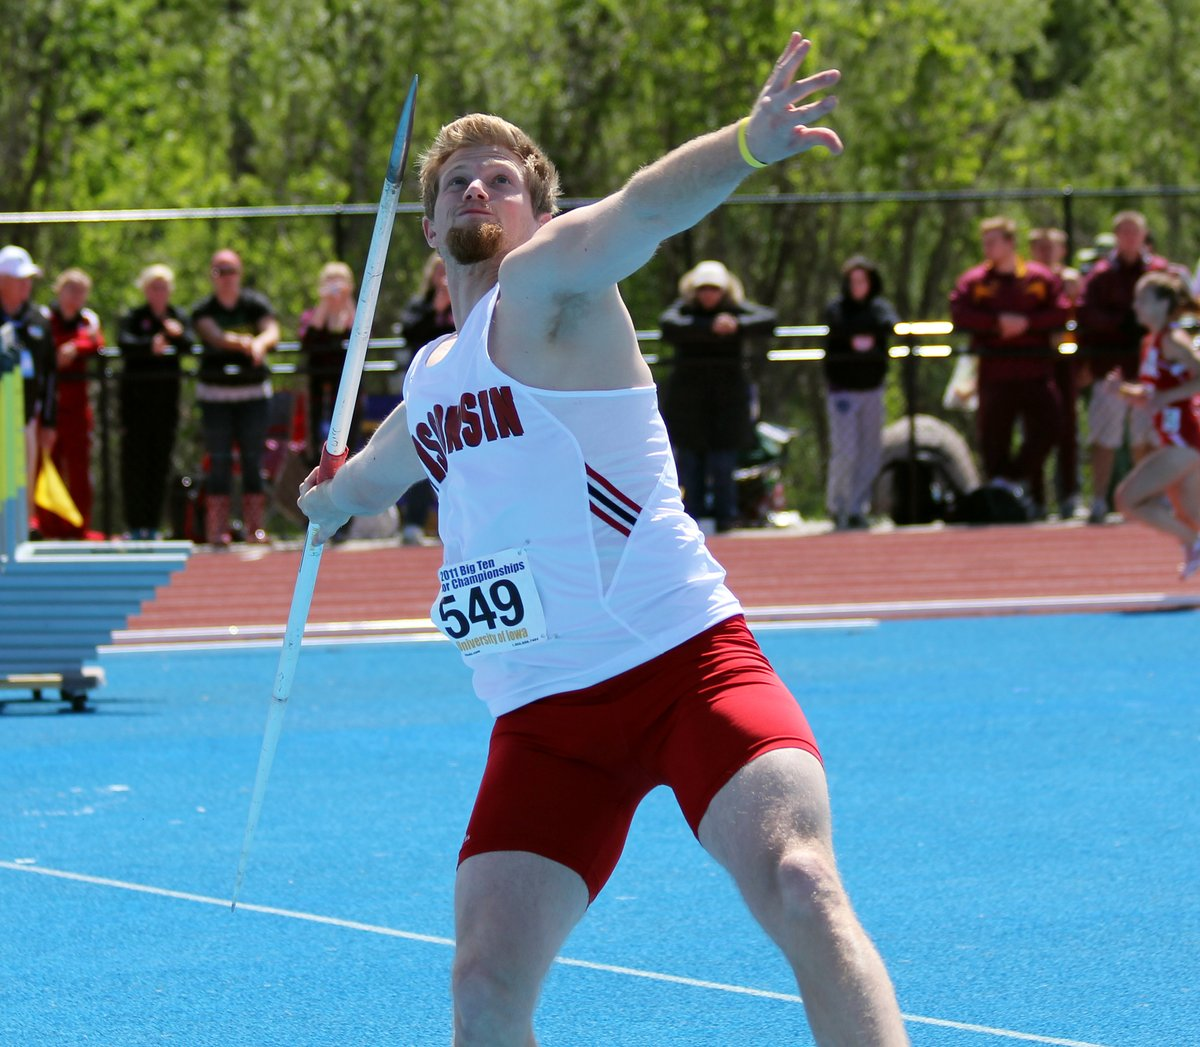 𝓞𝓷 𝓽𝓱𝓲𝓼 𝓭𝓪𝔂 ...  Robert Dehn set the UW record in the javelin at 231-10 in 2009. Dehn set the record at the NCAA Regional to qualify for the national championship! https://t.co/cm7ZbDNqhI